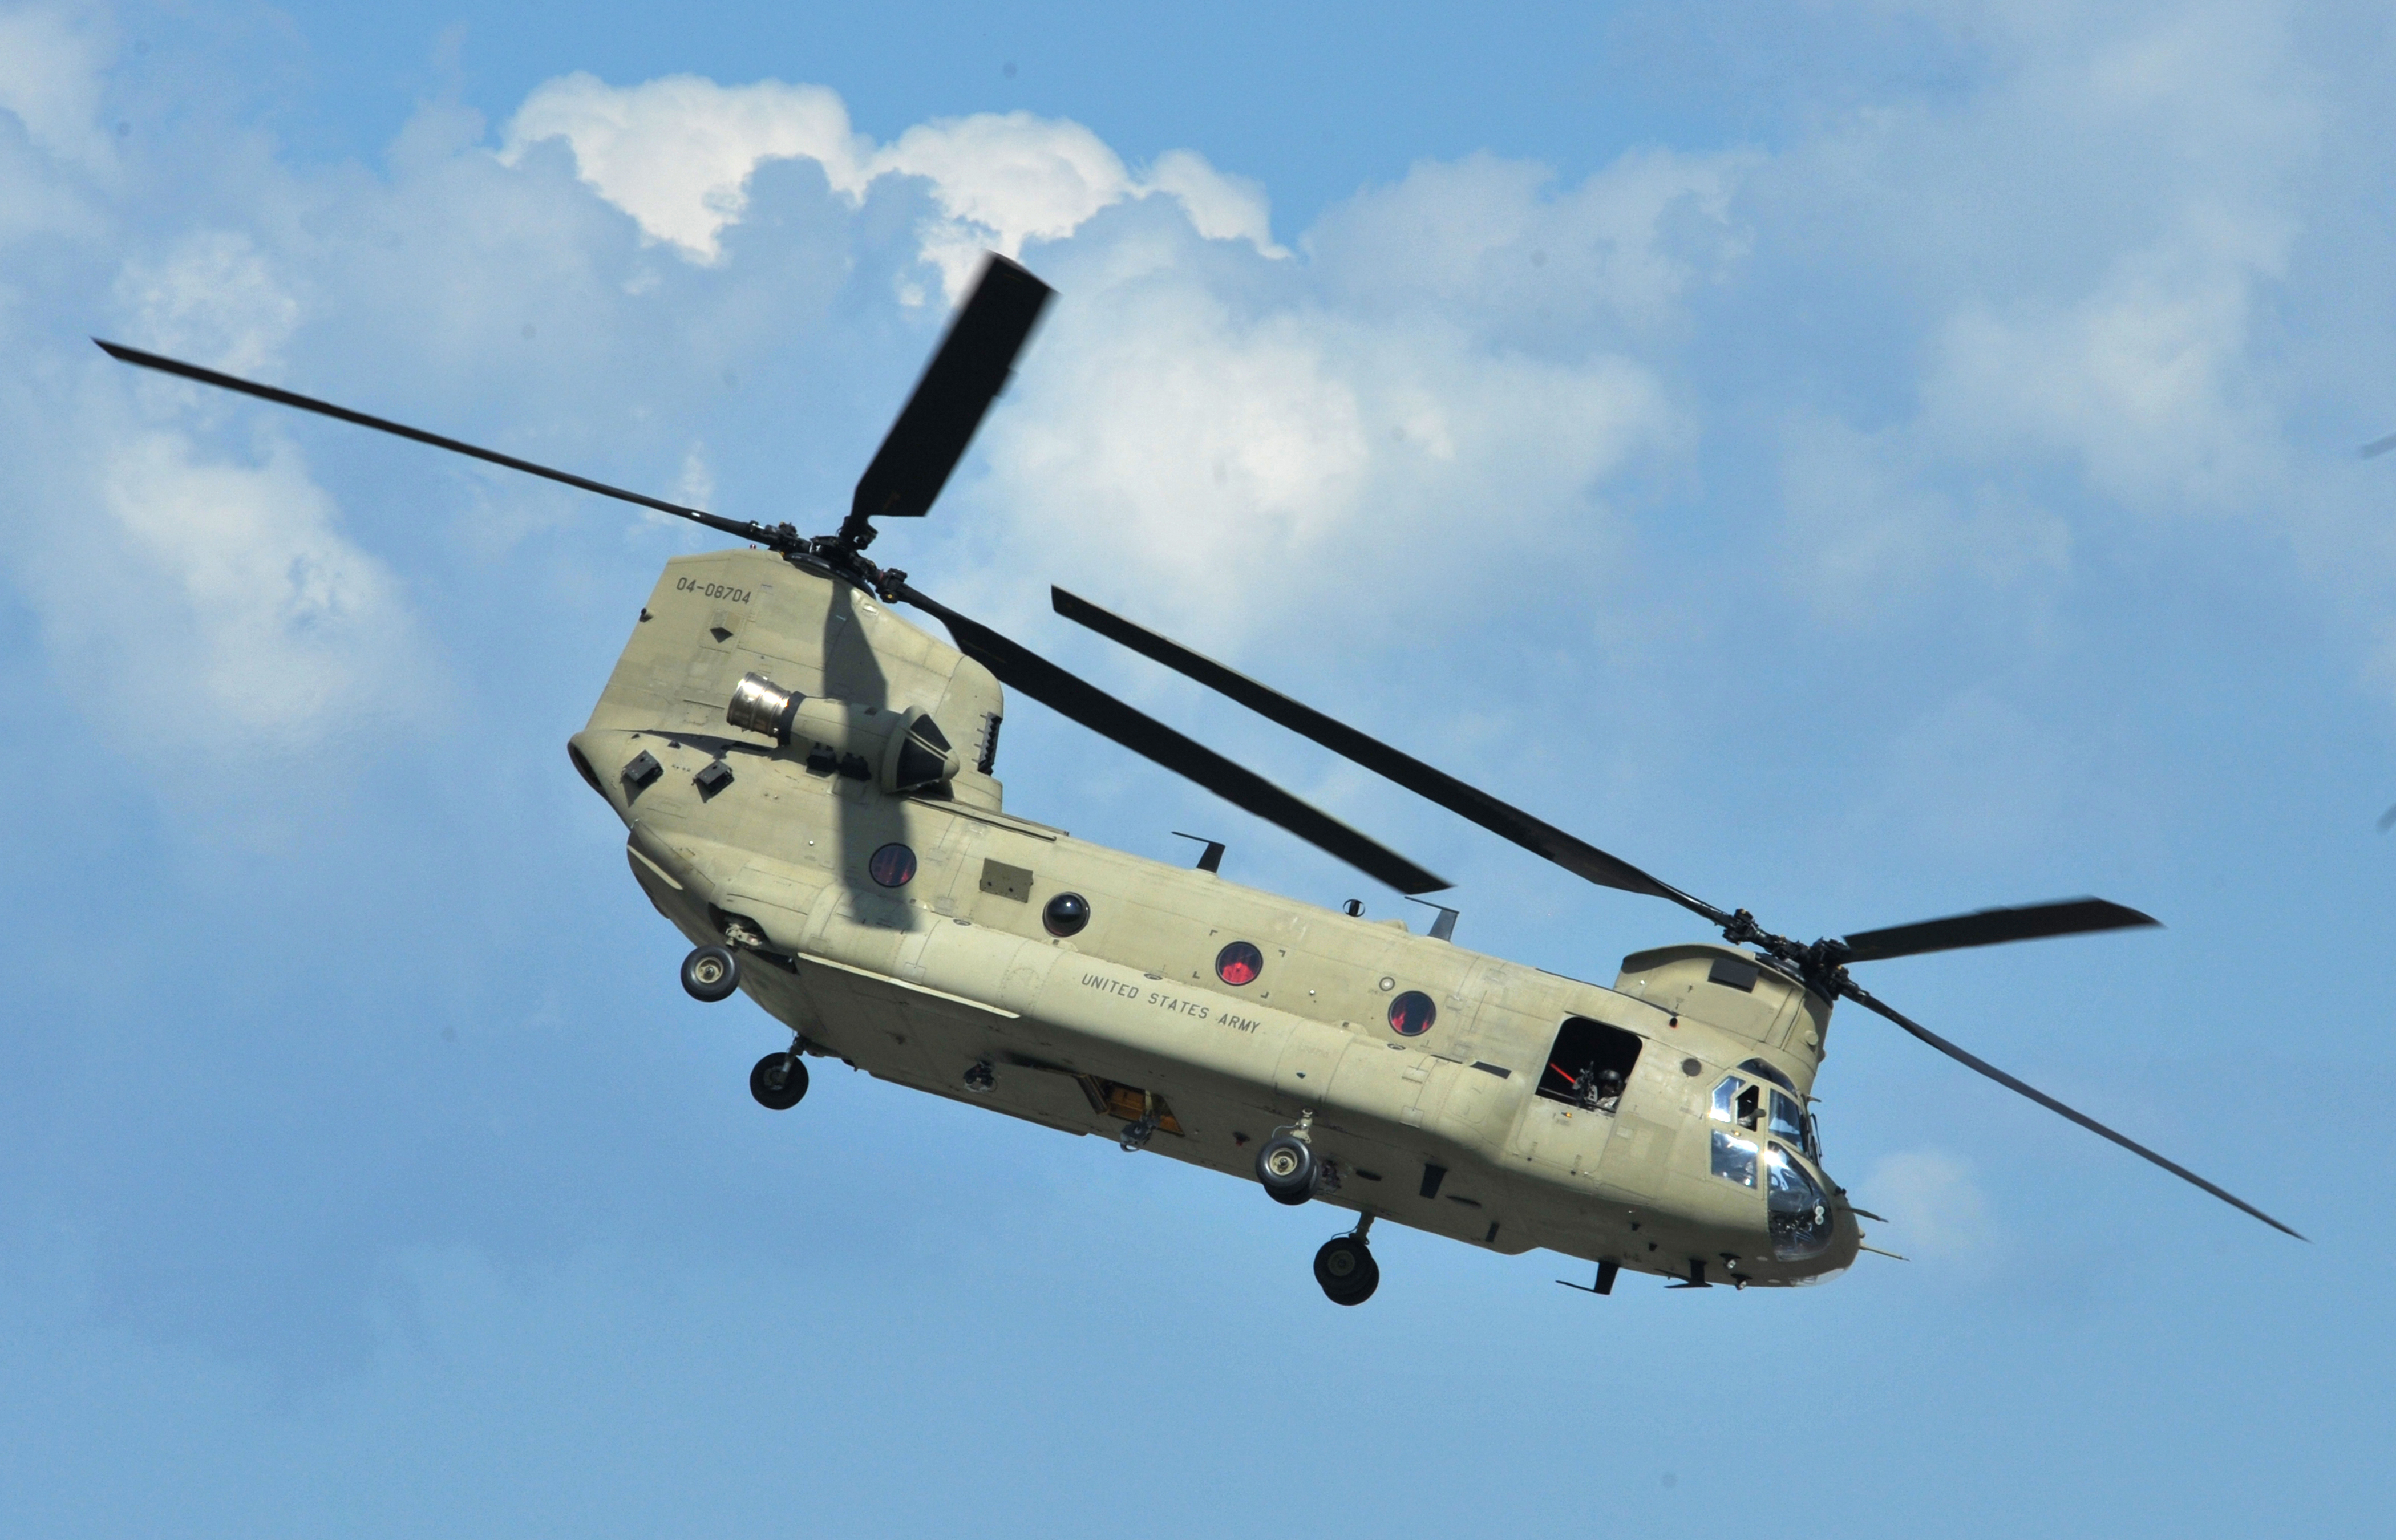 Description A U.S. Army CH-47 Chinook helicopter, assigned to the ... Army Helicopters In Action